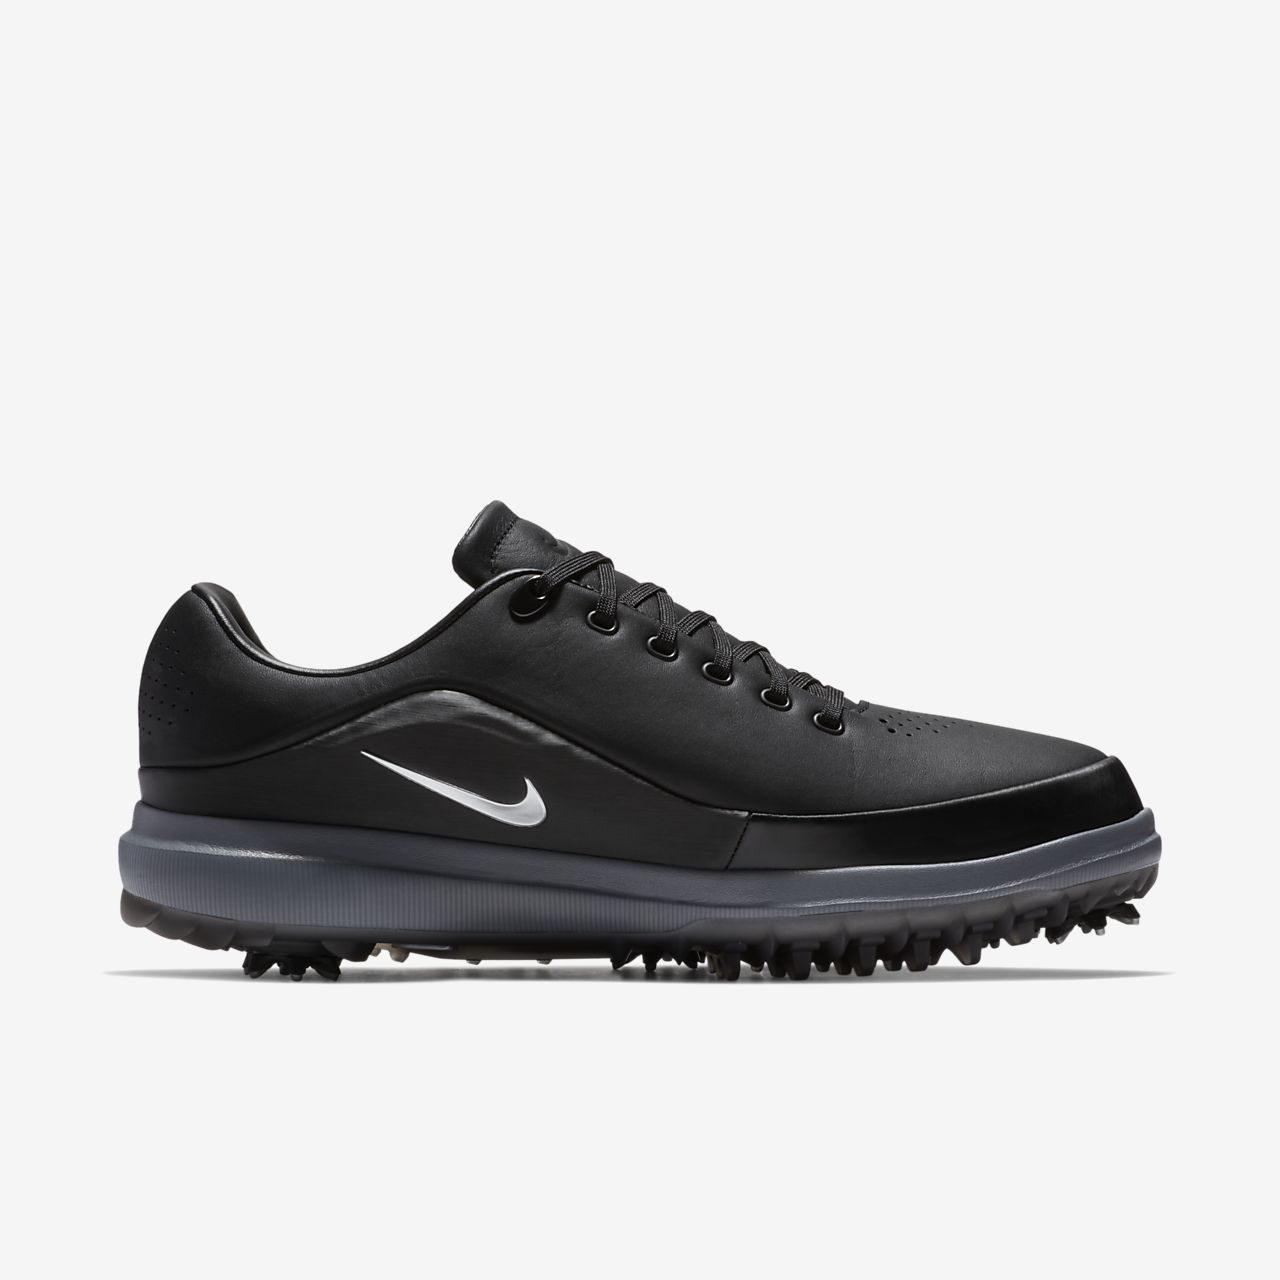 5501f197c Nike Air Zoom Precision Men s Golf Shoe. Nike.com DK